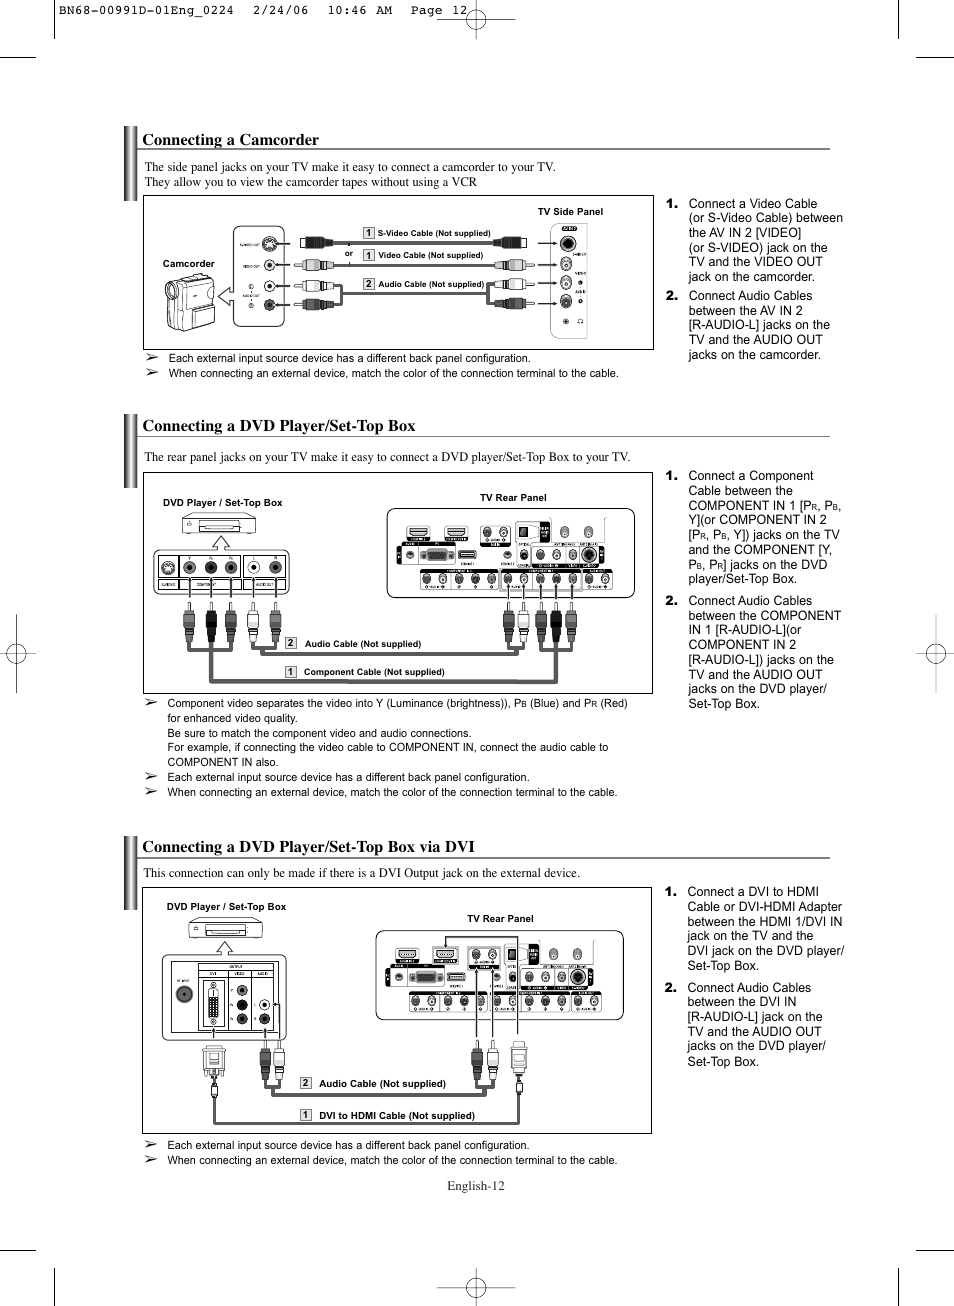 Connecting A Camcorder Dvd Player Set Top Box Hookup Video Diagrams Cable To Tv Via Dvi Samsung Sps4243x Xaa User Manual Page 12 64